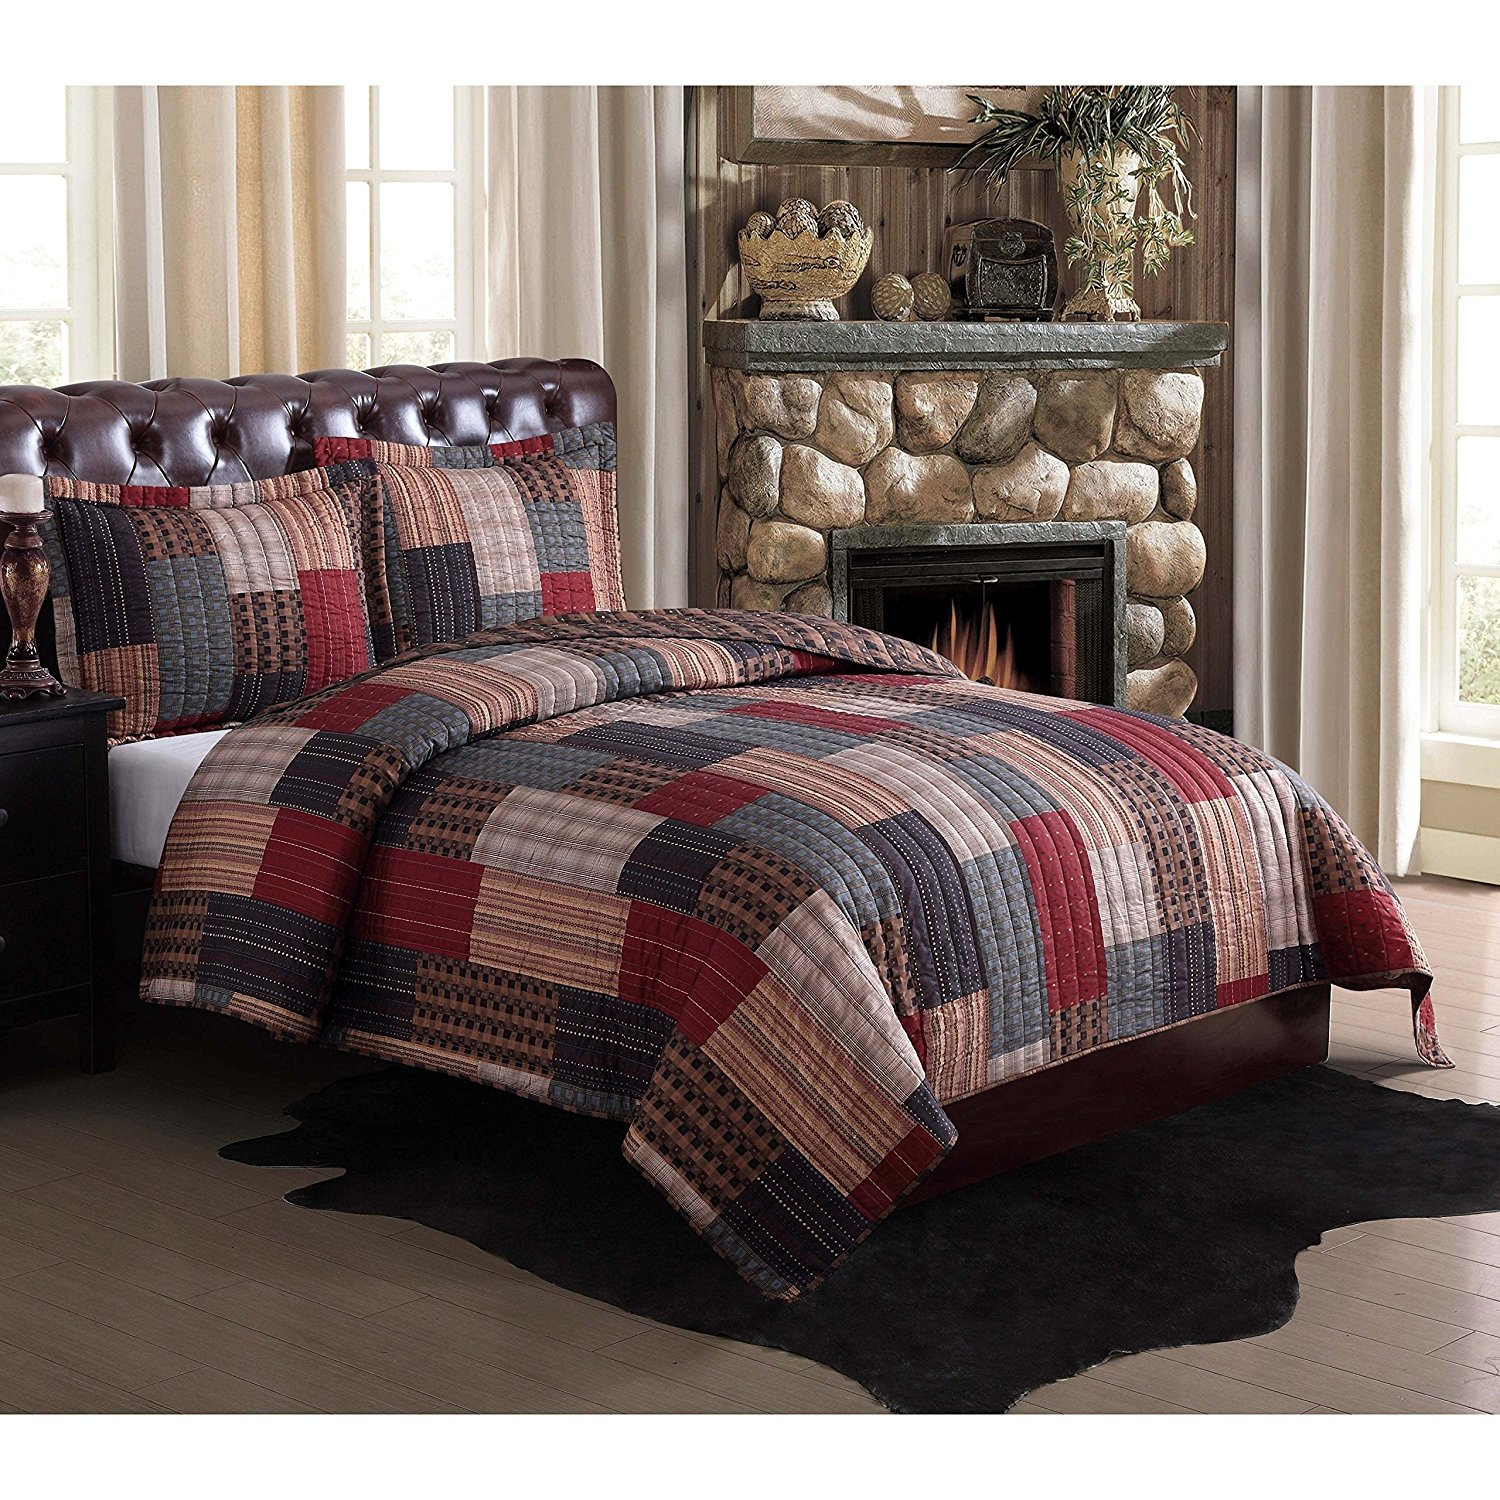 AD 3 Piece Red Blue Patchwork Full Queen Size Quilt Set,Grey Green Brown Cabin Lodge Rustic Southwest Theme Bedding, Gray Checkered Square Rectangle Plaid Pattern Stripe, Polyester